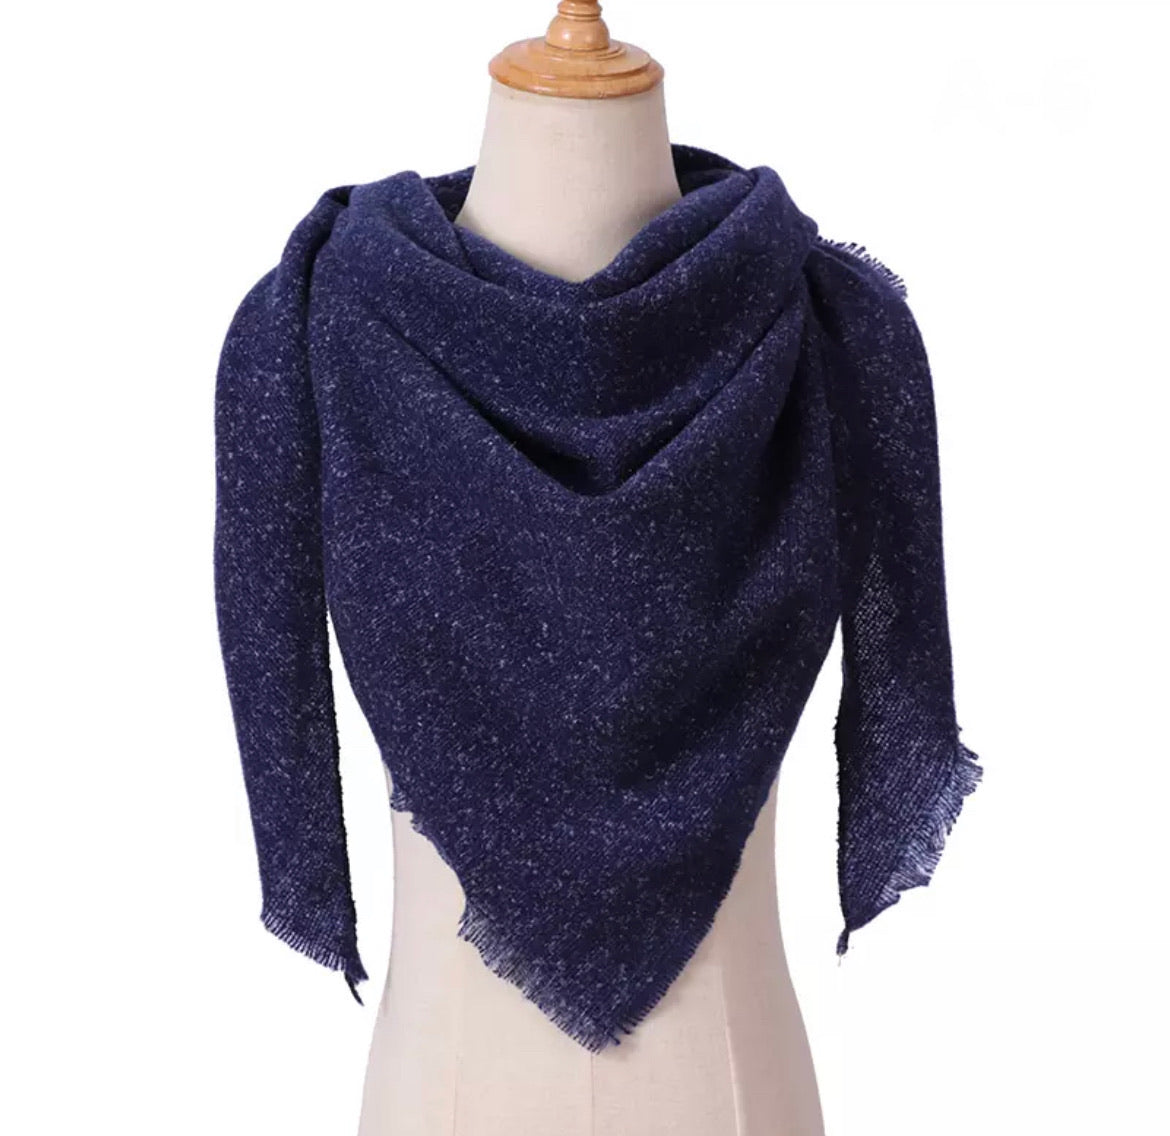 Heathered Navy Triangle Blanket Scarf